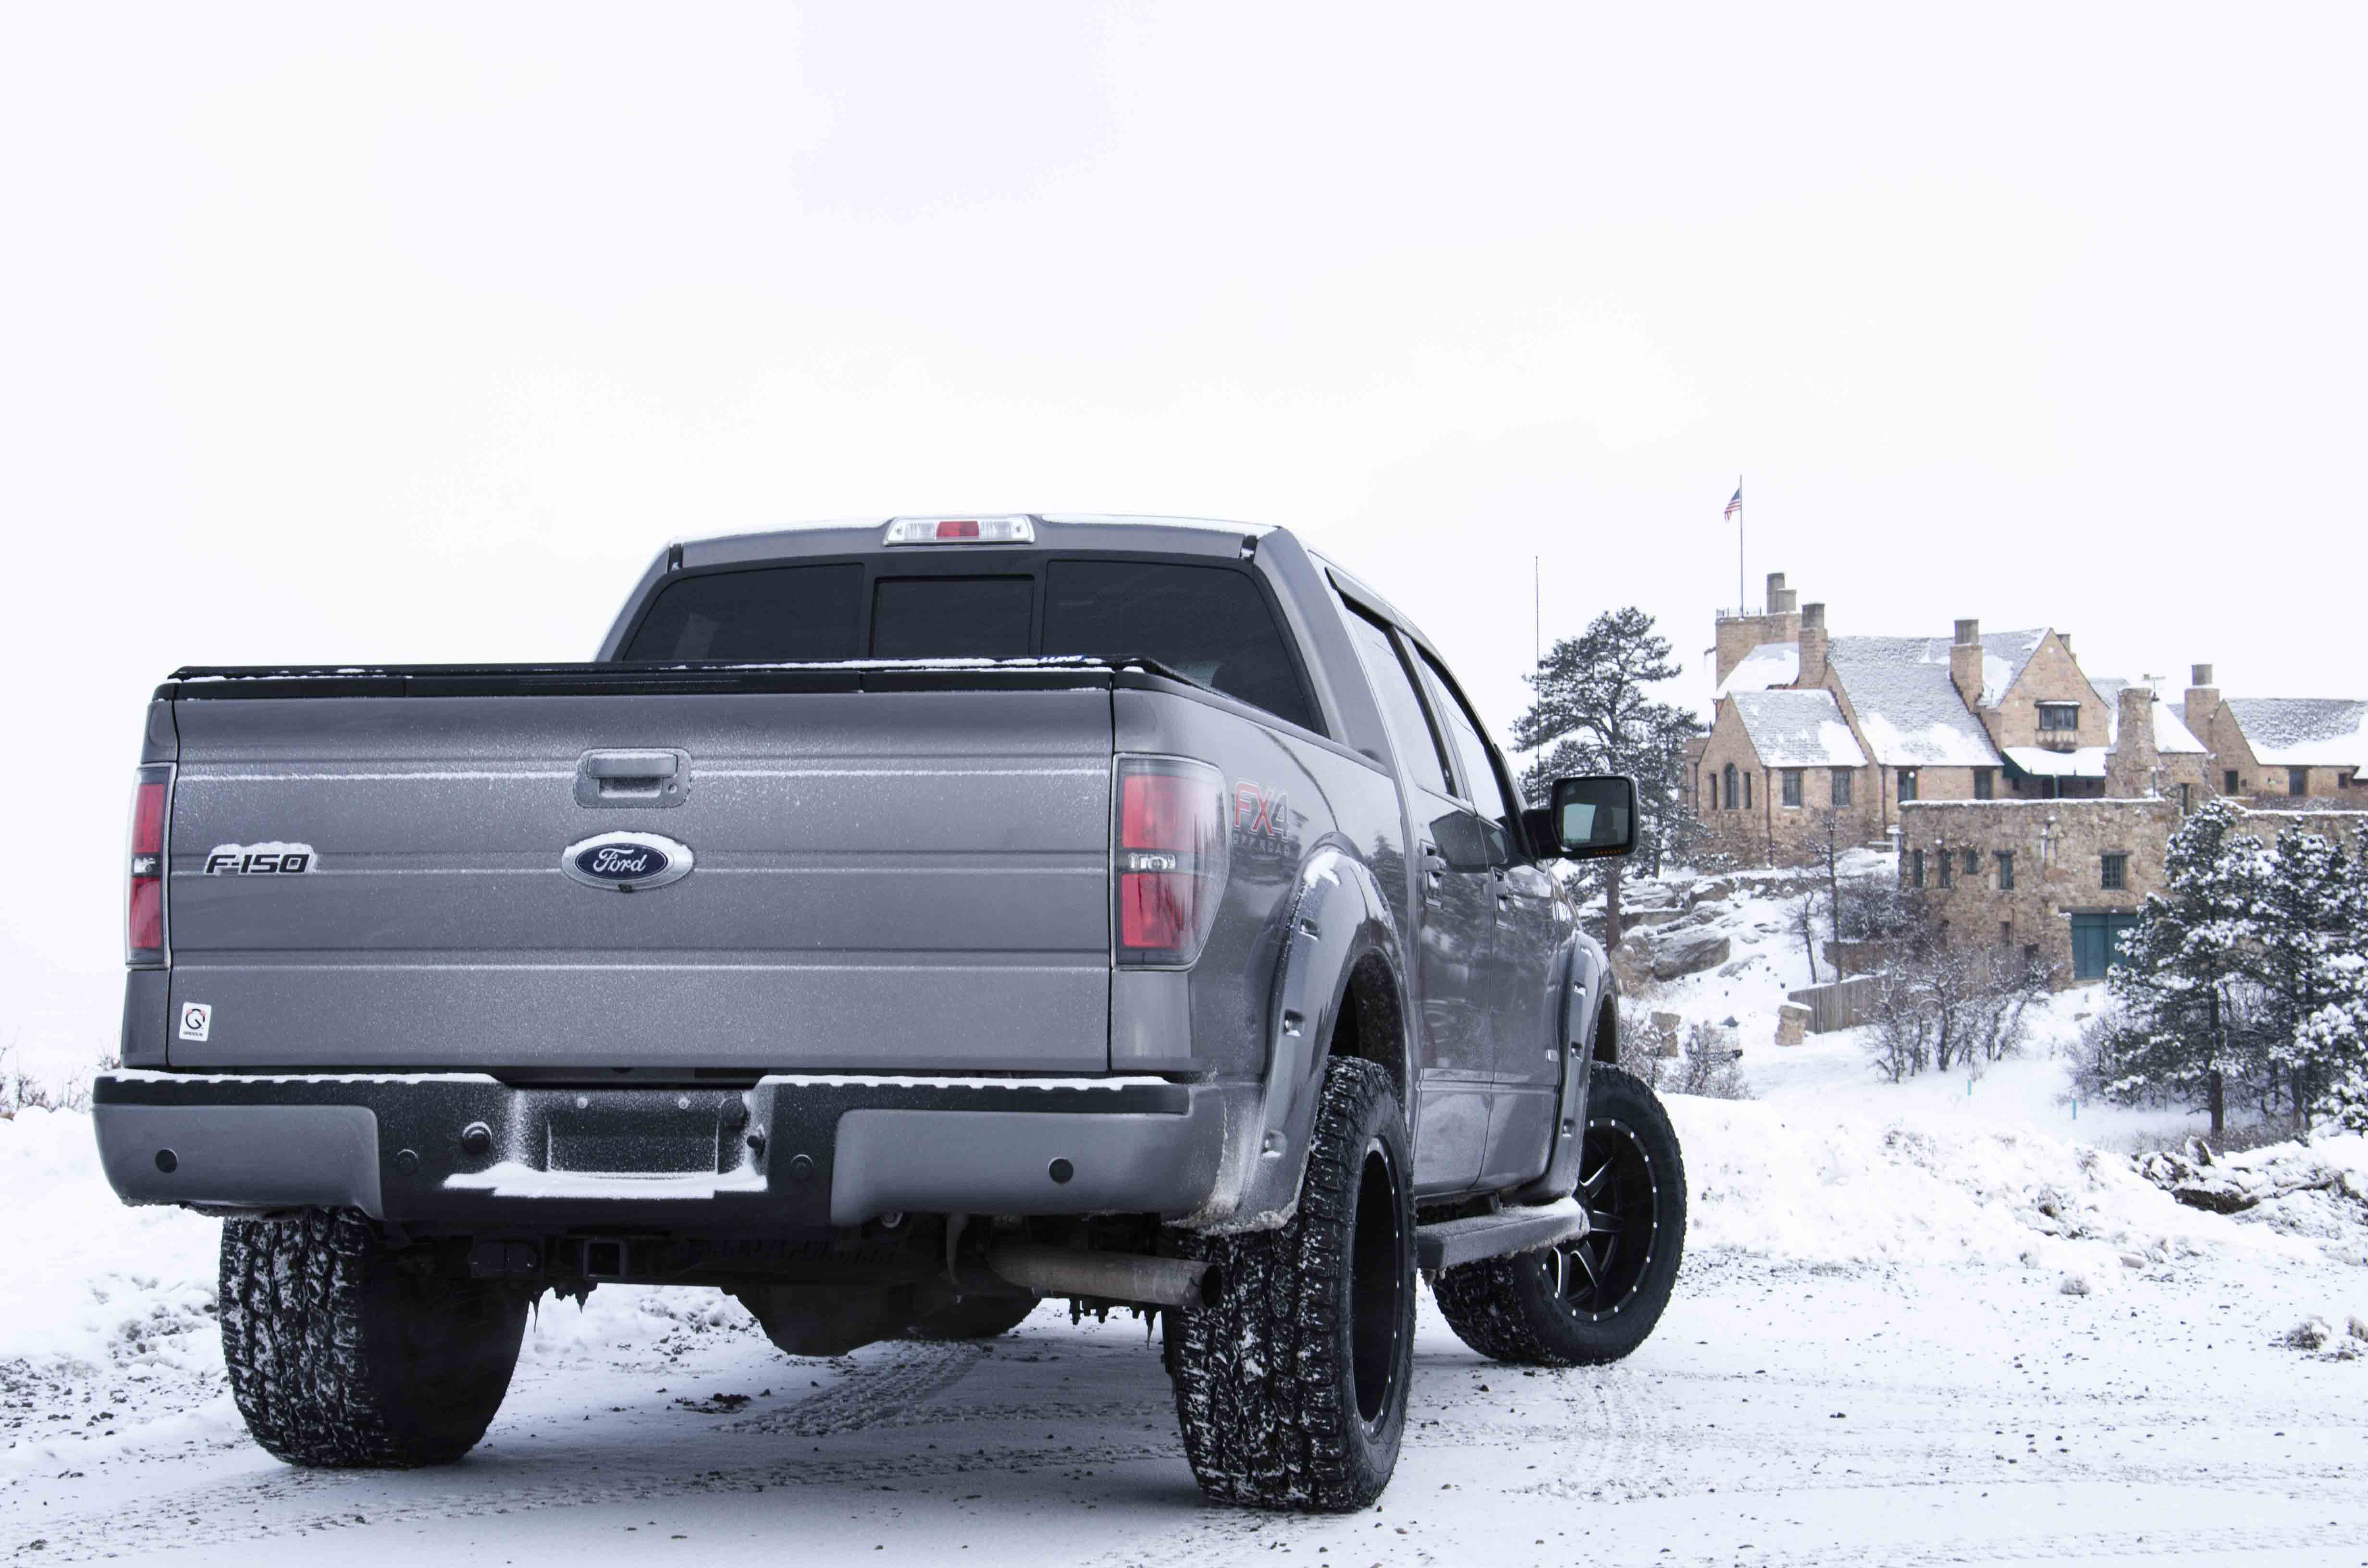 2014 F150 Sterling Gray Fx4 Crew Build Page 2